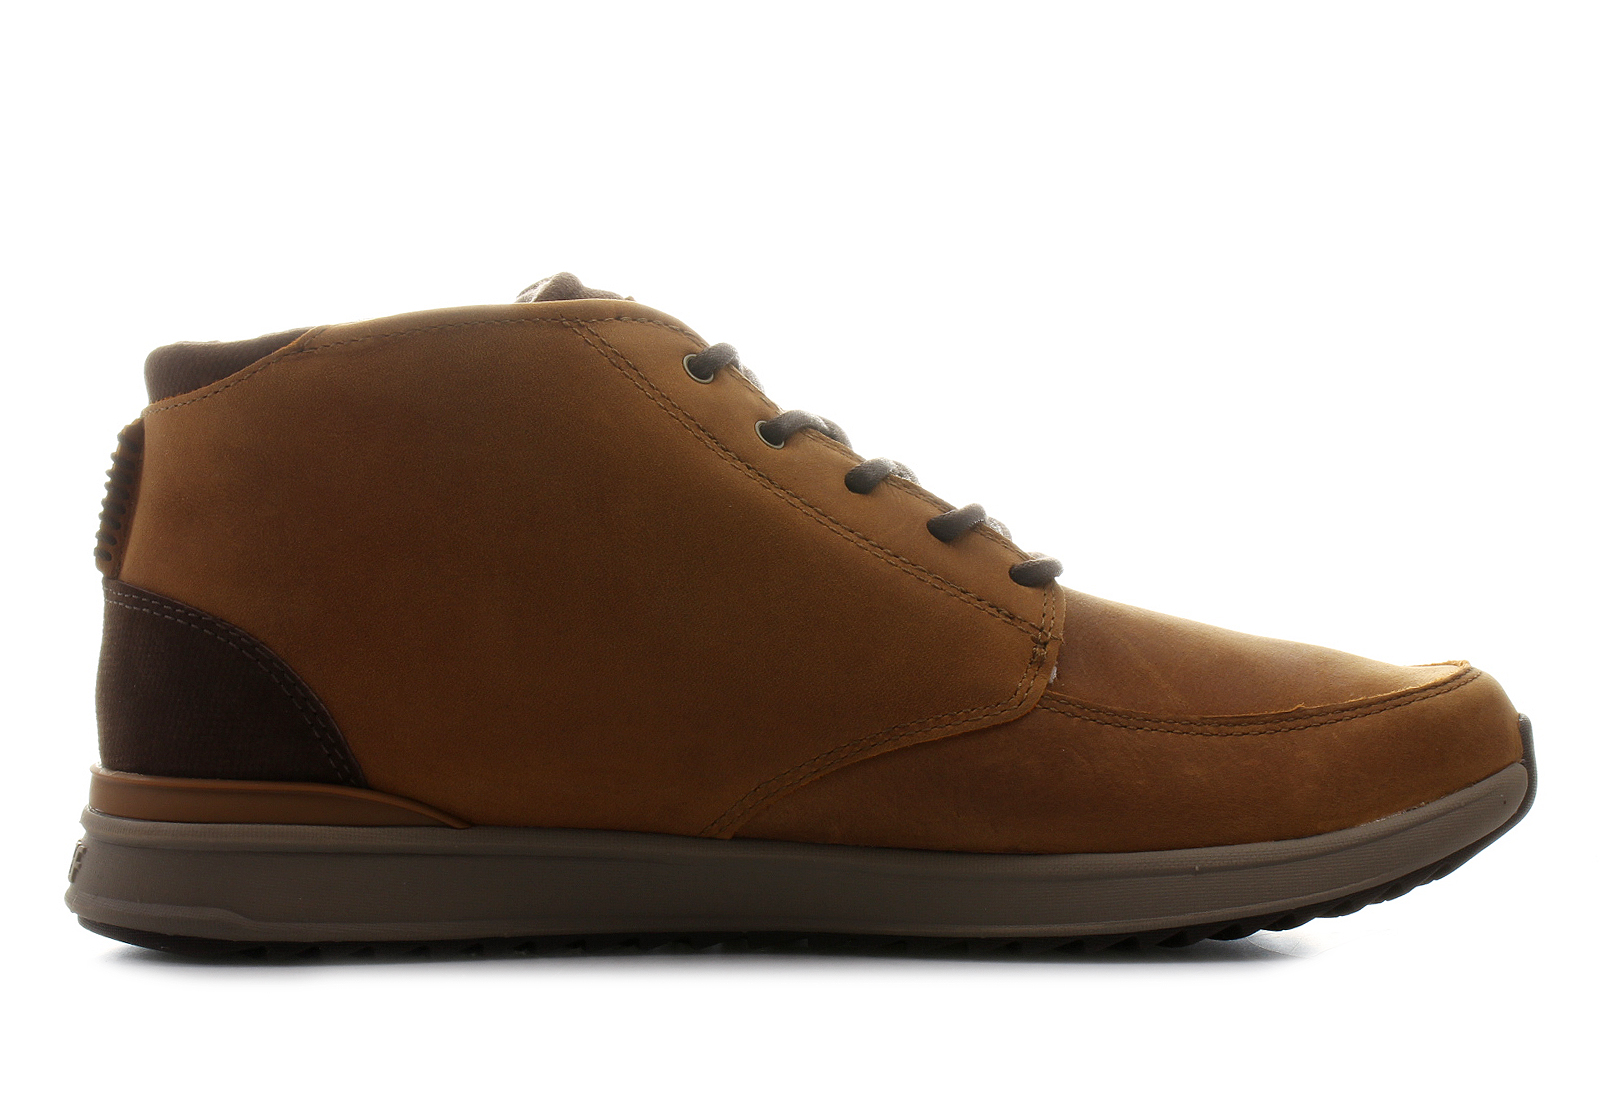 Reef Shoes Rover Mid Wt Ra3623cbn Online Shop For